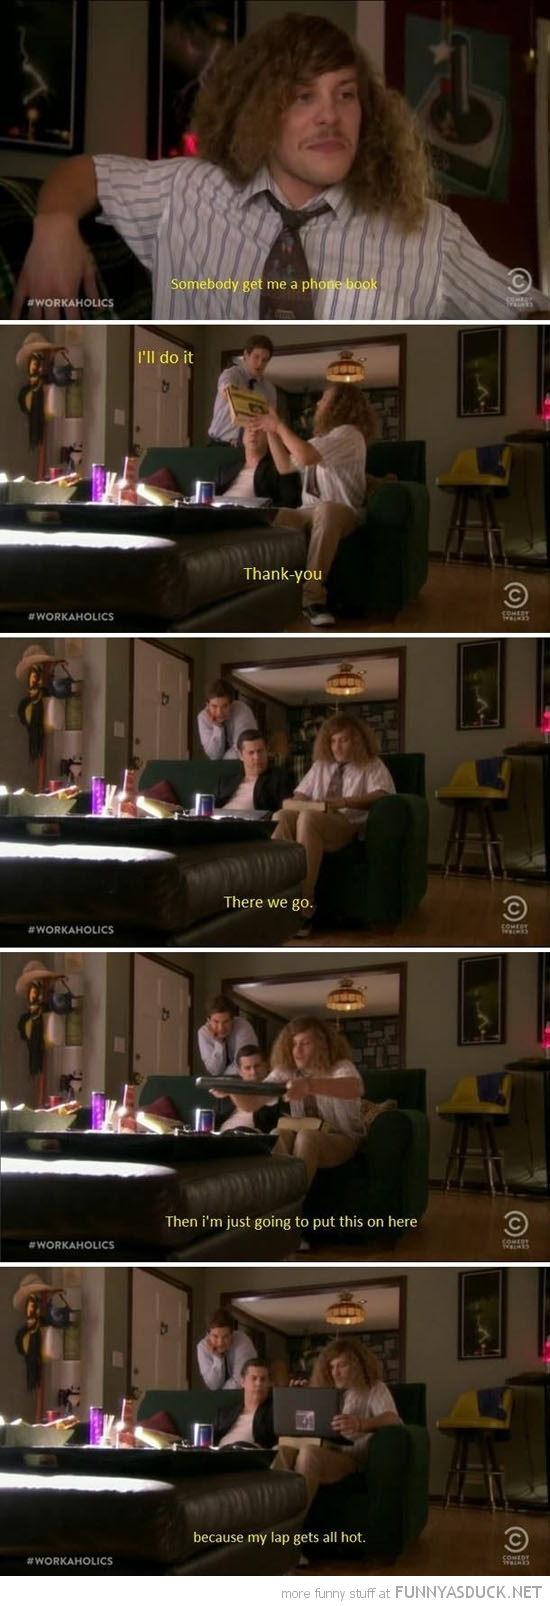 laptop hot yellow pages workoholics tv scene funny pics pictures pic picture image photo images photos lol